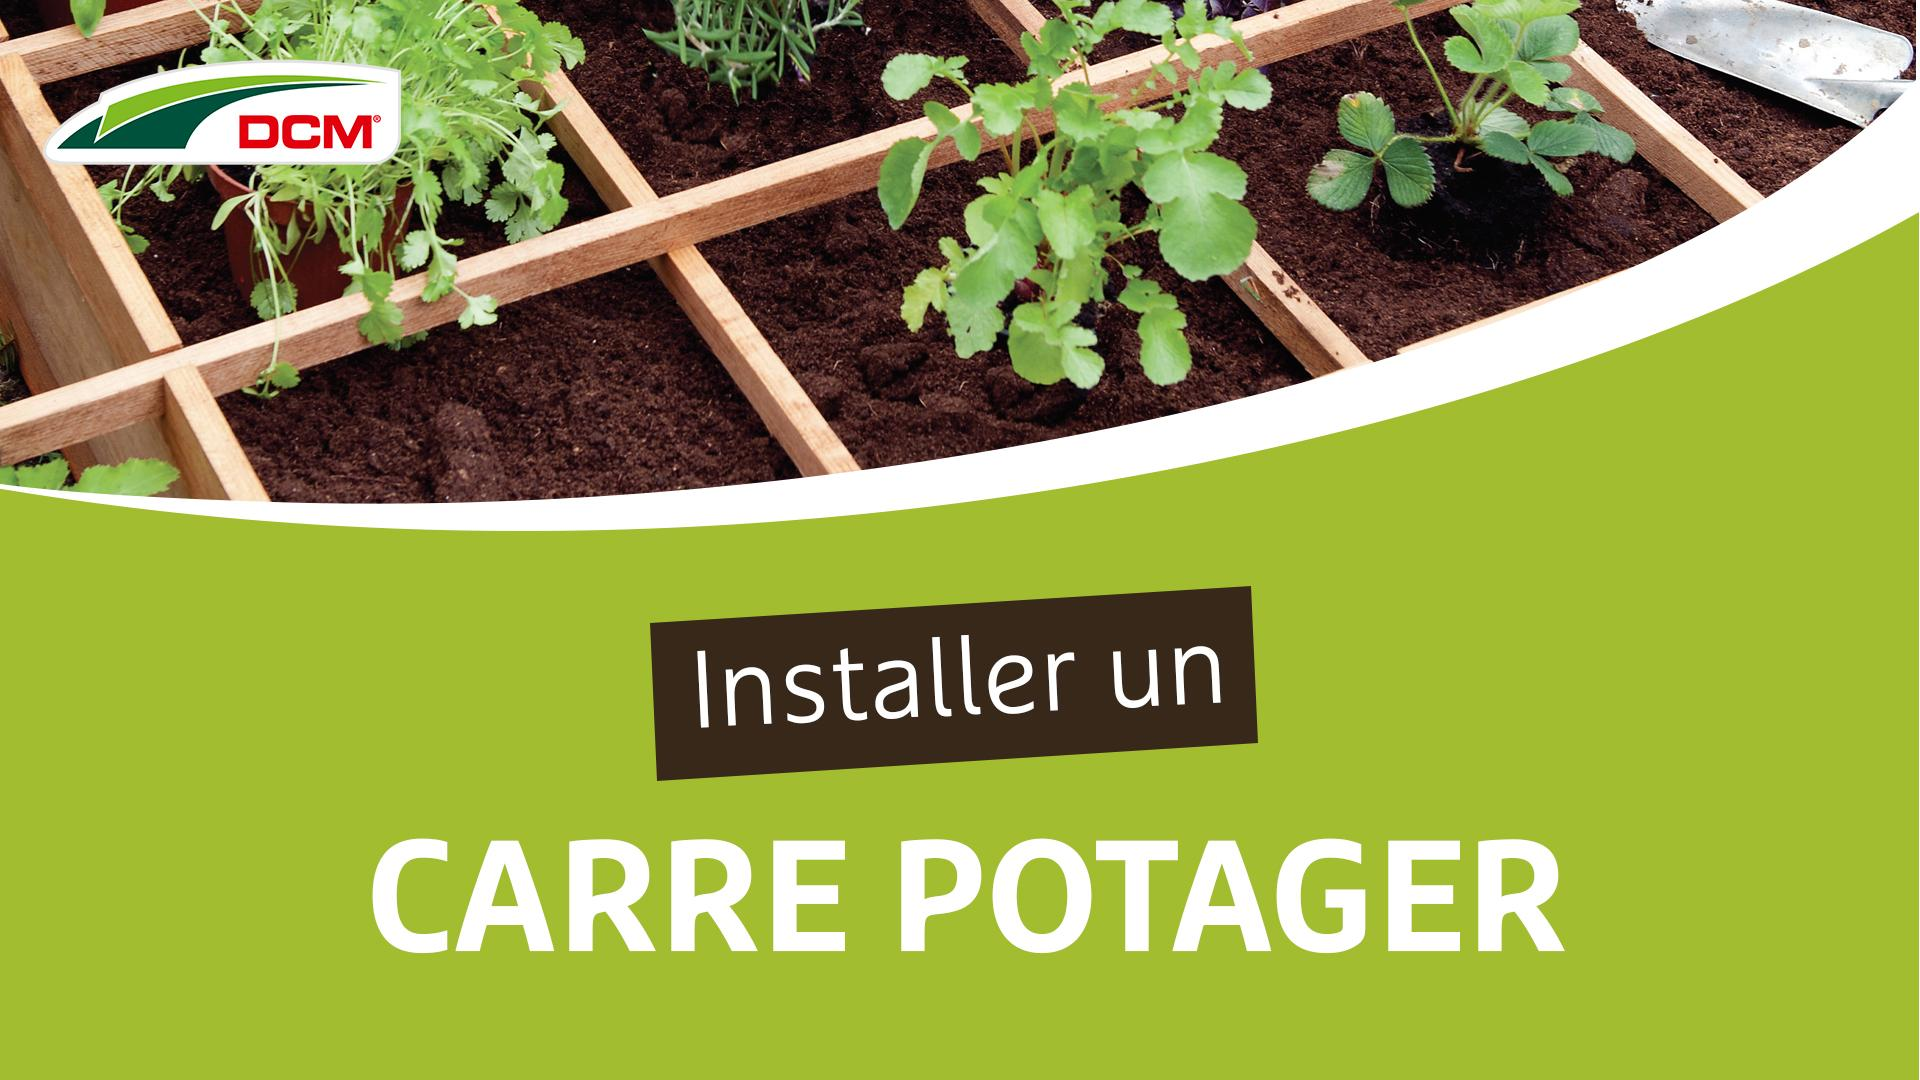 Installer un carré potager - Vivimus® DCM Légumes & Fruits